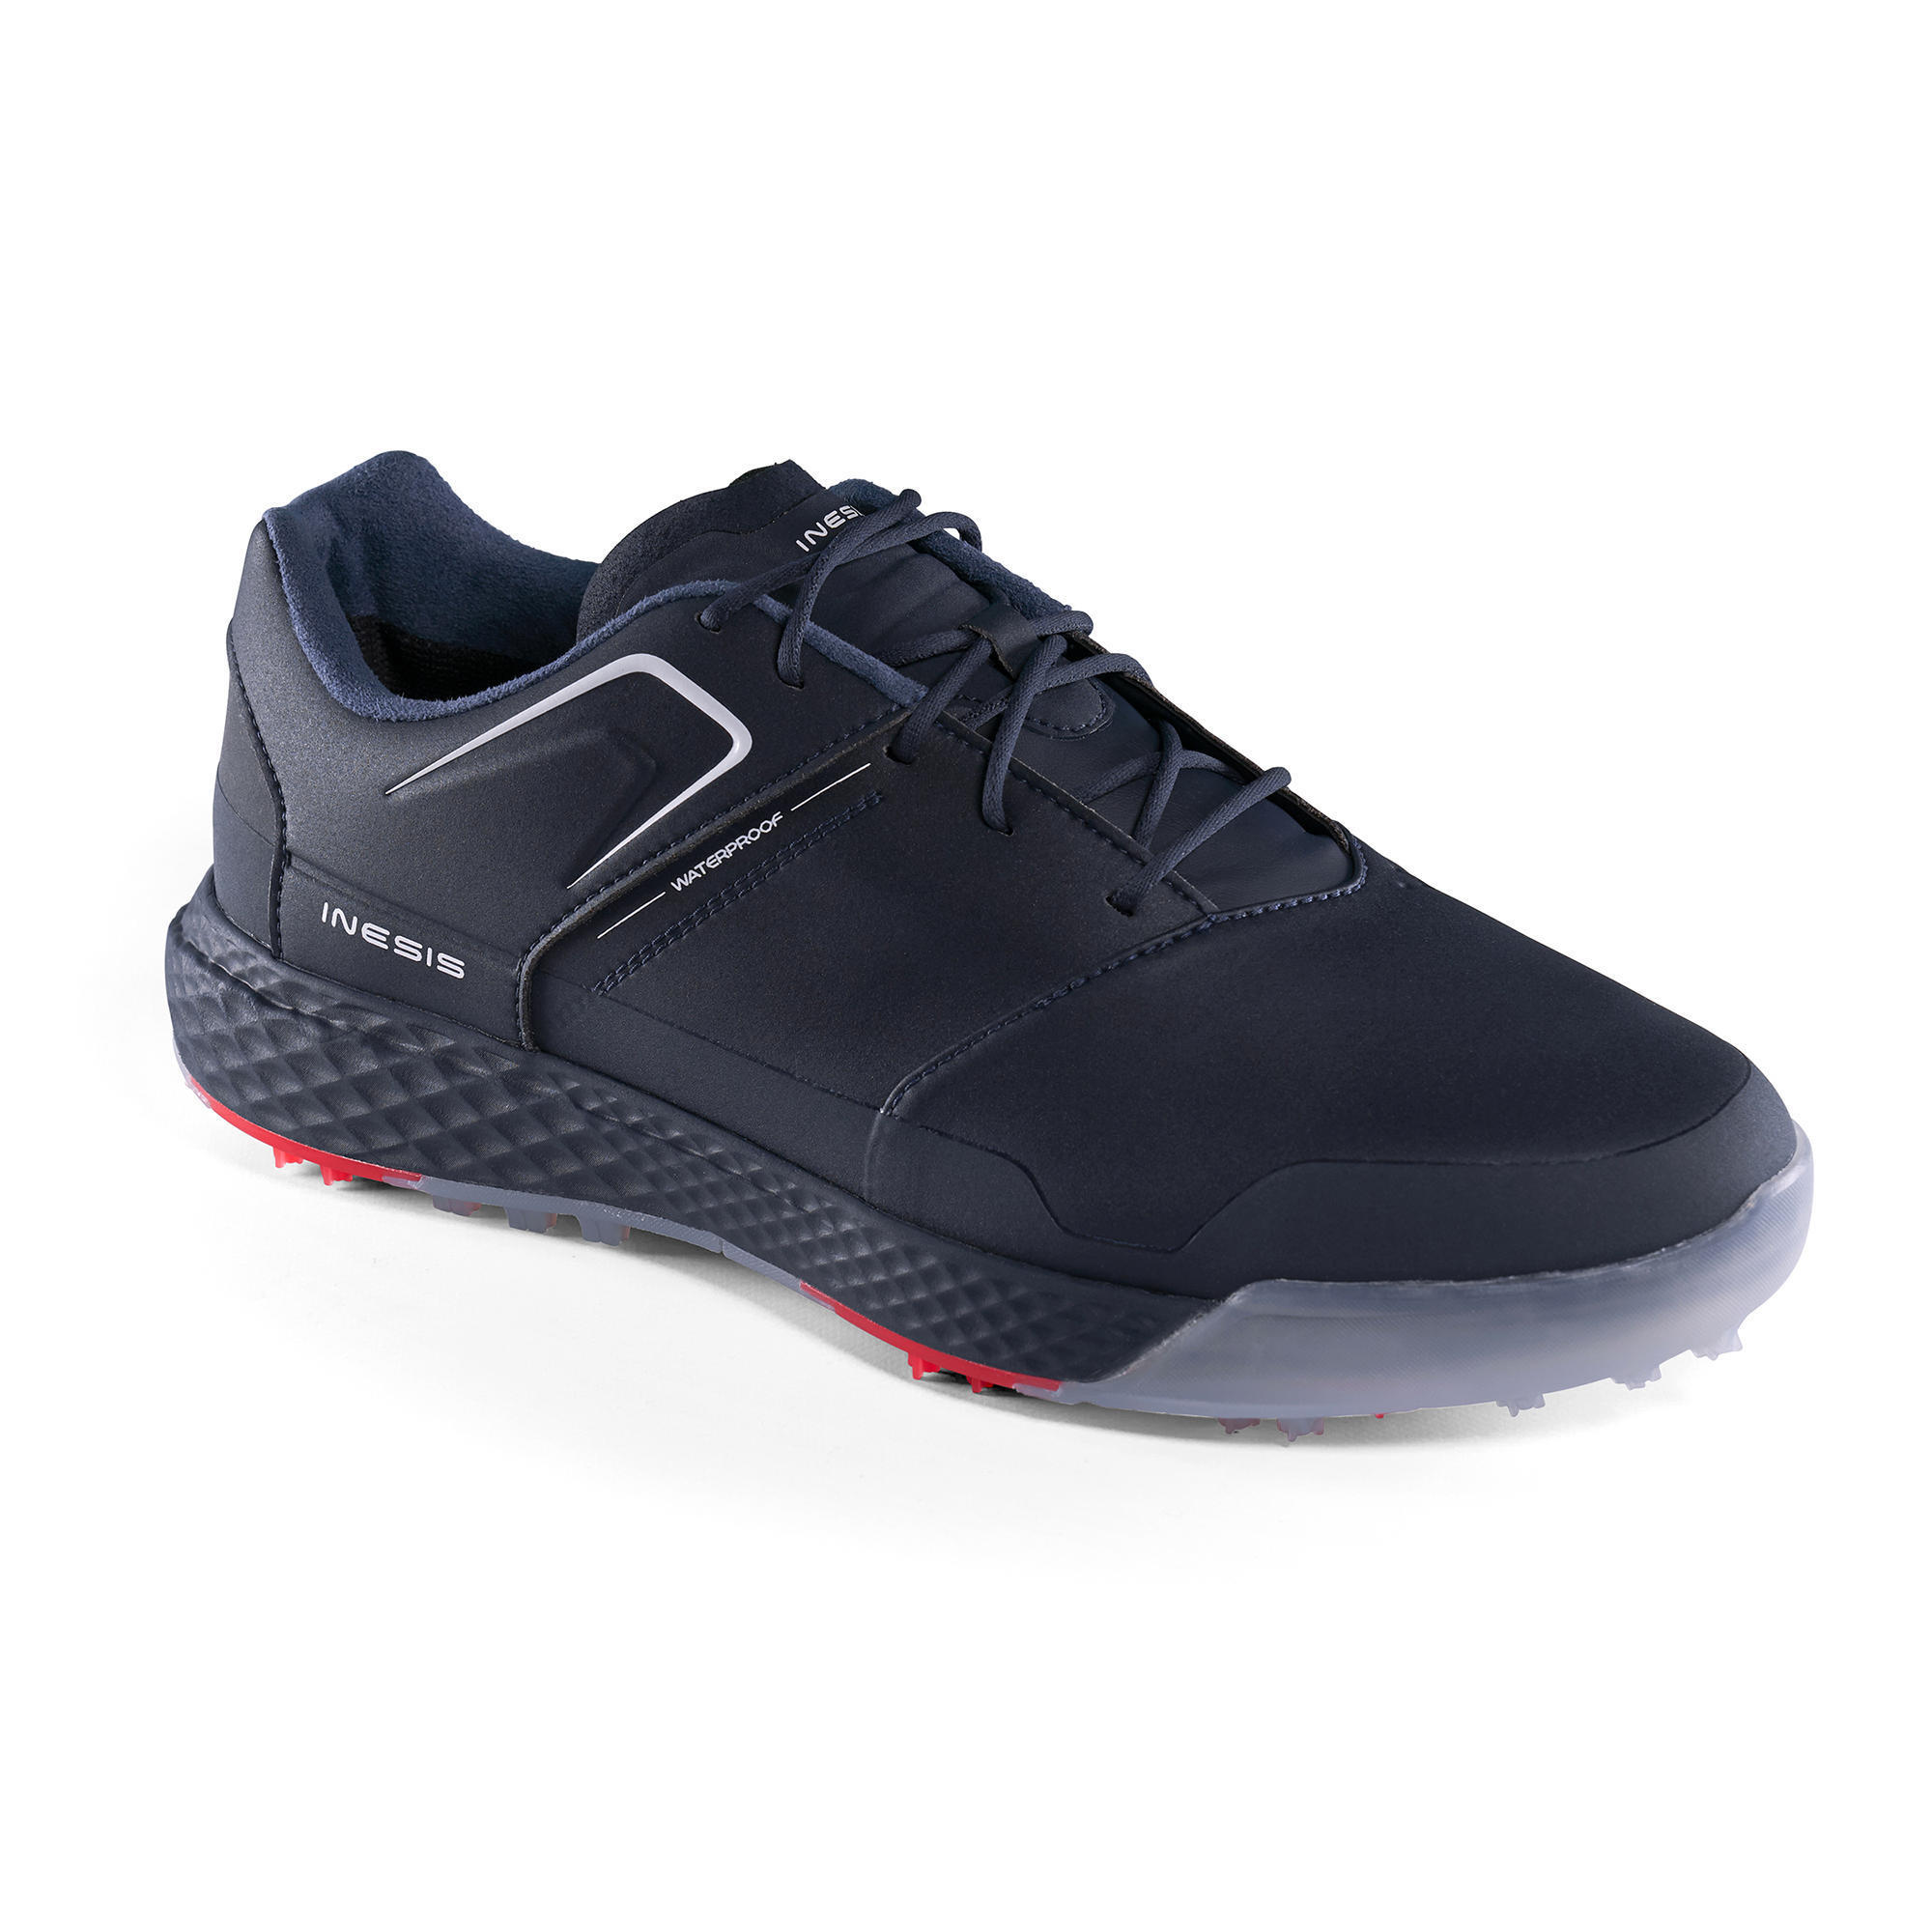 Inesis Golfschoenen heren Grip Waterproof